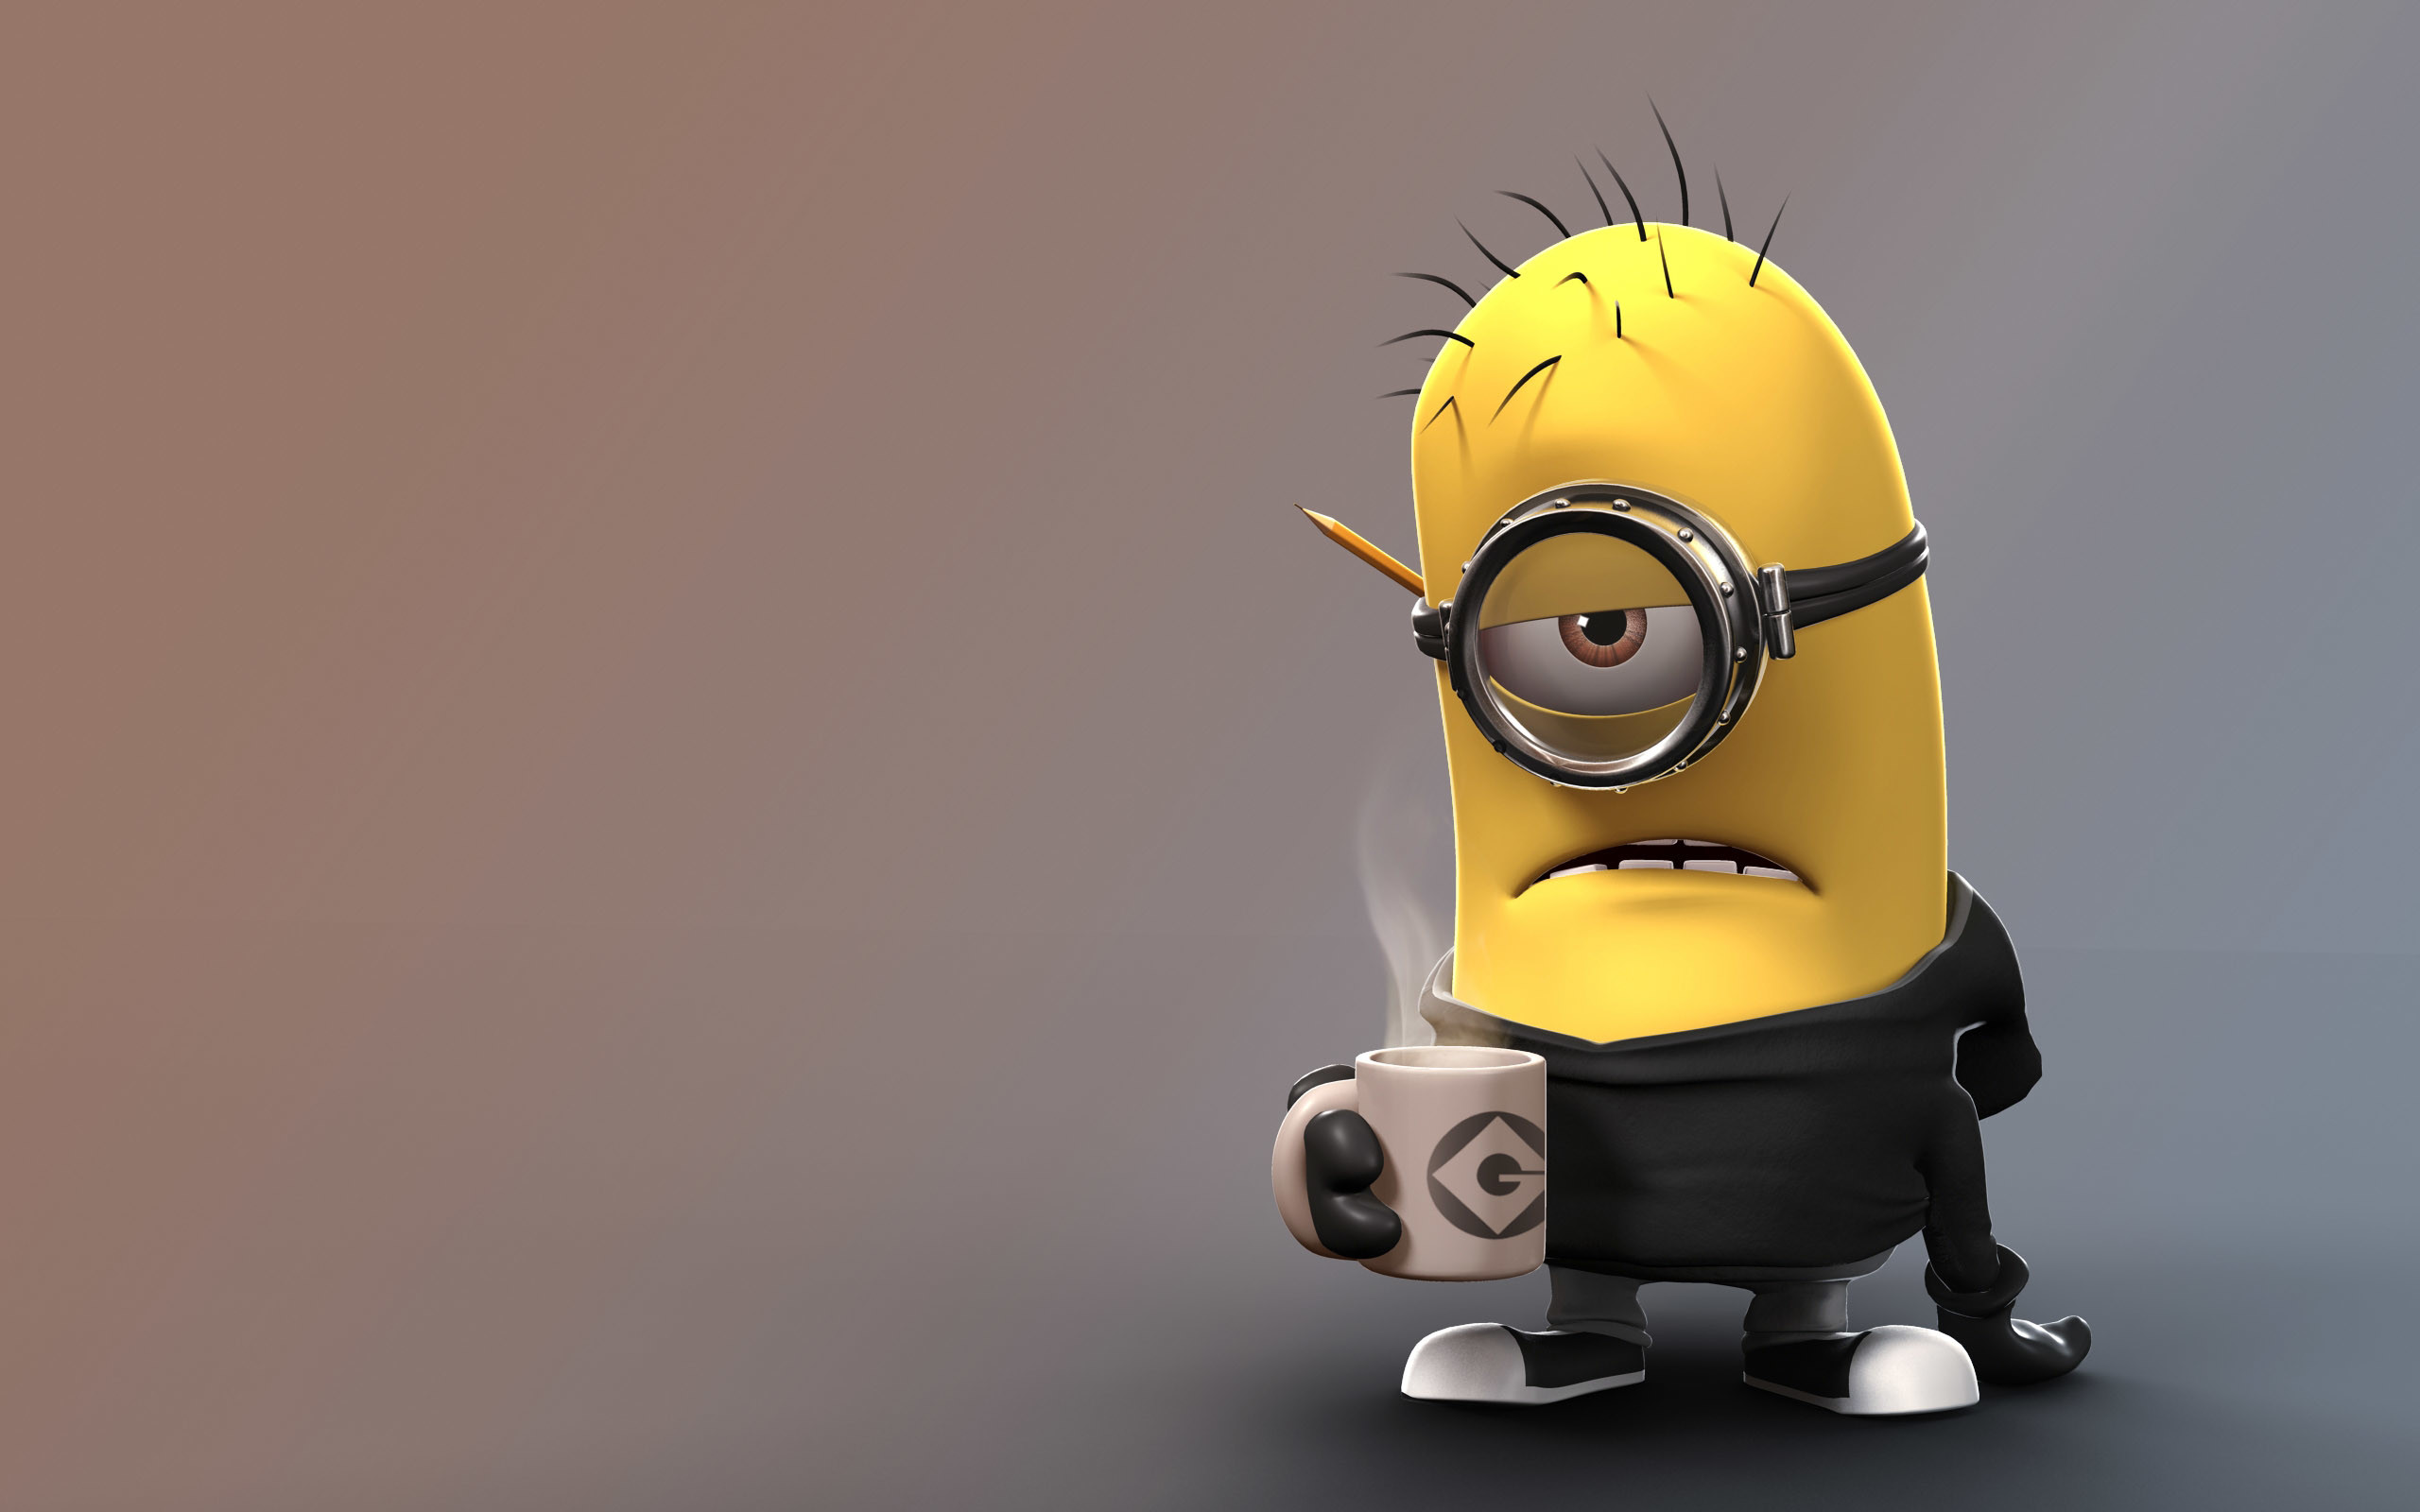 [Cartoons] A Cute Collection Of Despicable Me 2 Minions | Wallpapers,  Images & Fan Art